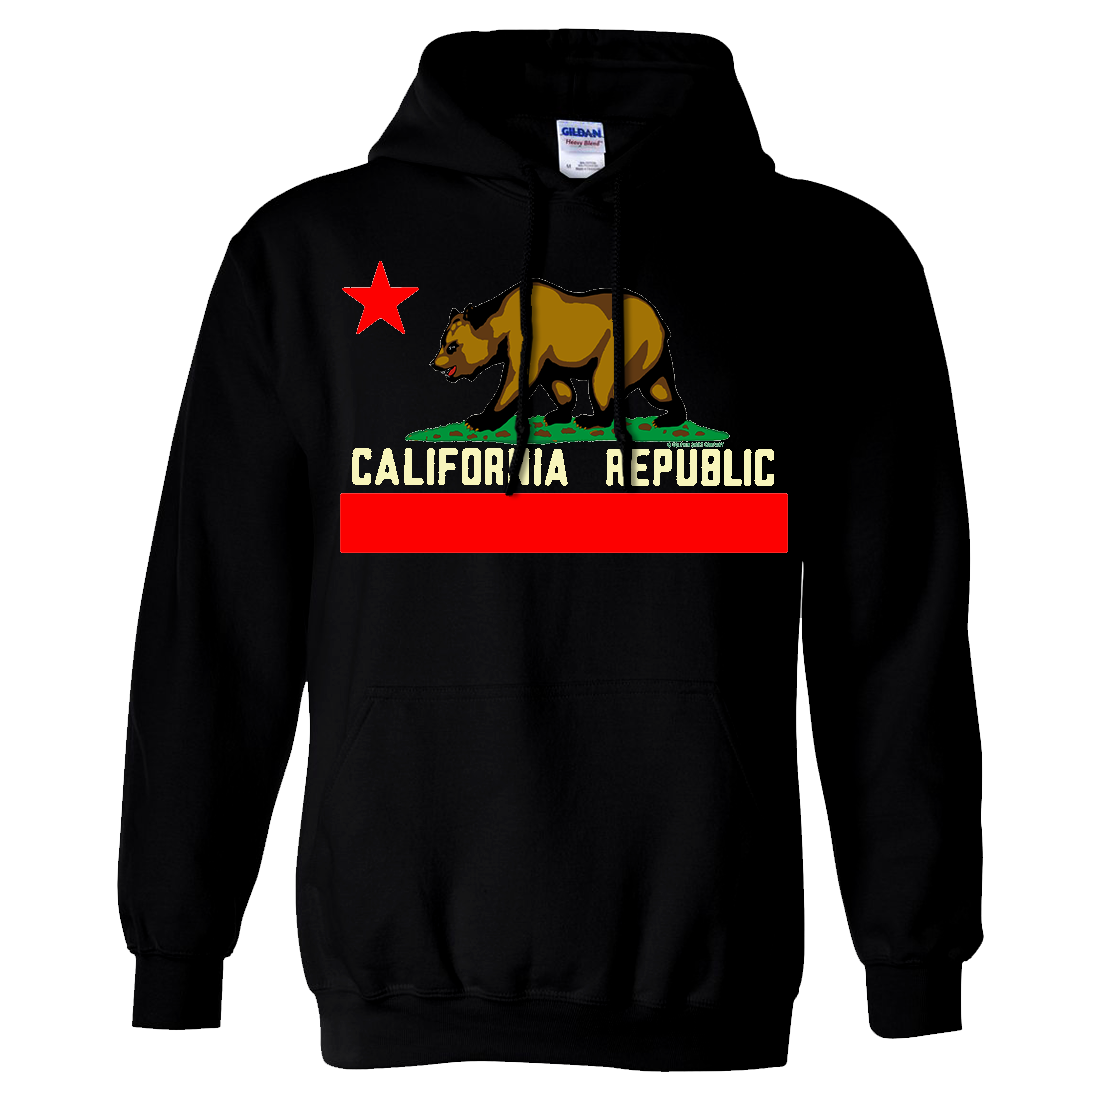 California State Flag Borderless Sweatshirt Hoodie